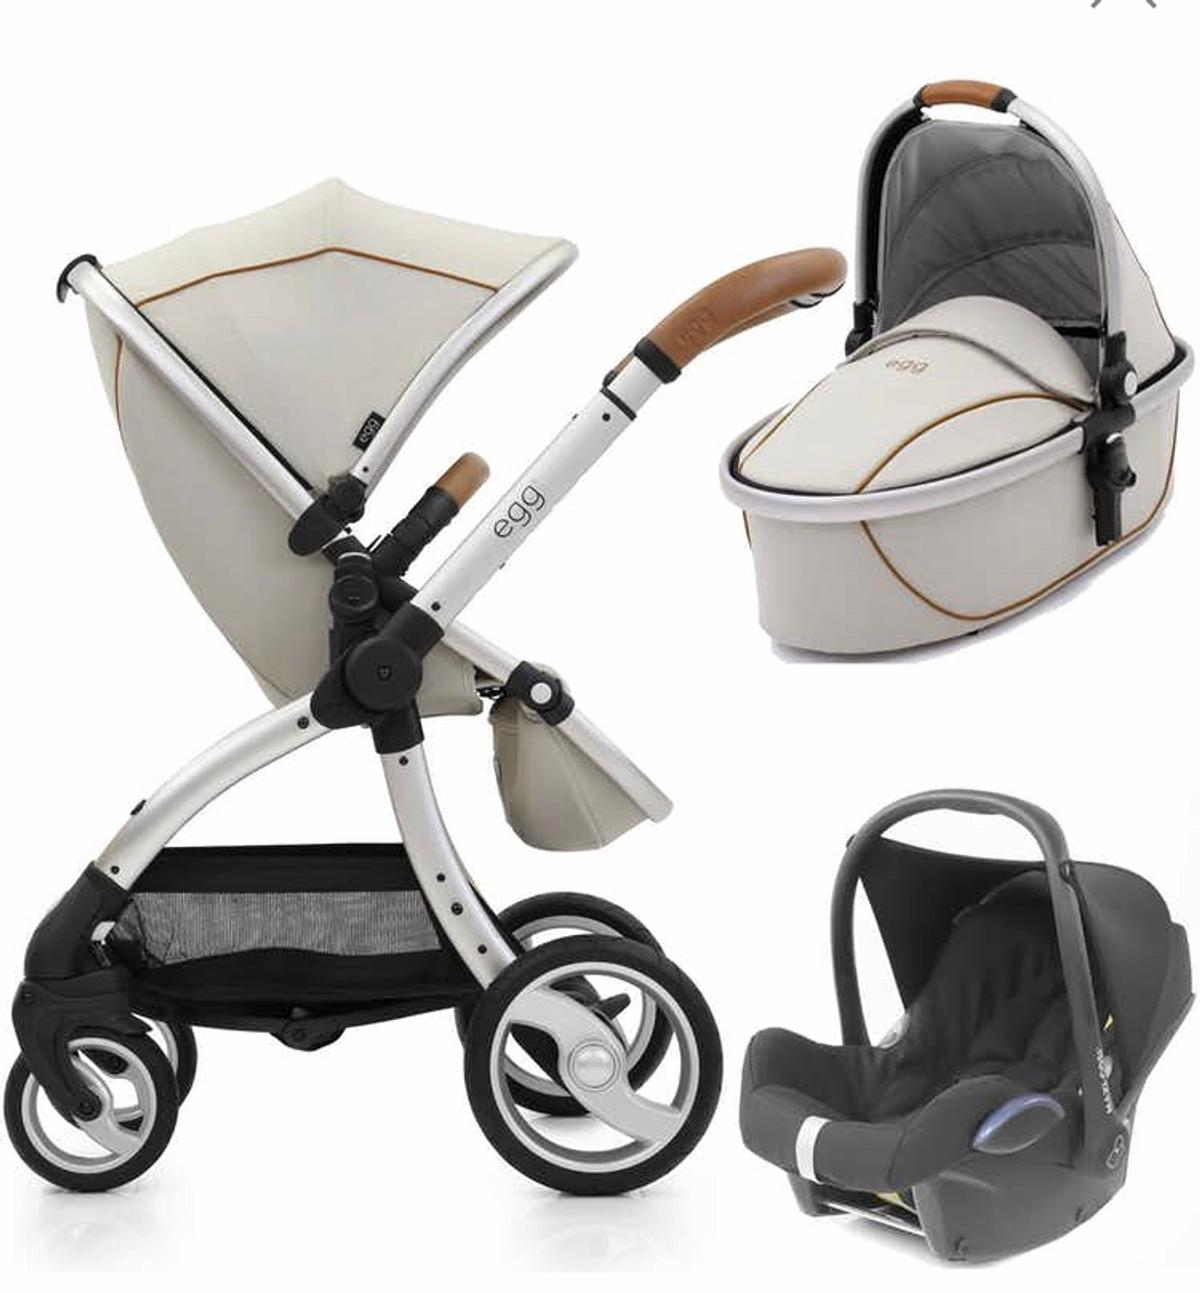 Egg Pram Gunmetal Egg Pram In Ol1 Oldham For 600 00 For Sale Shpock